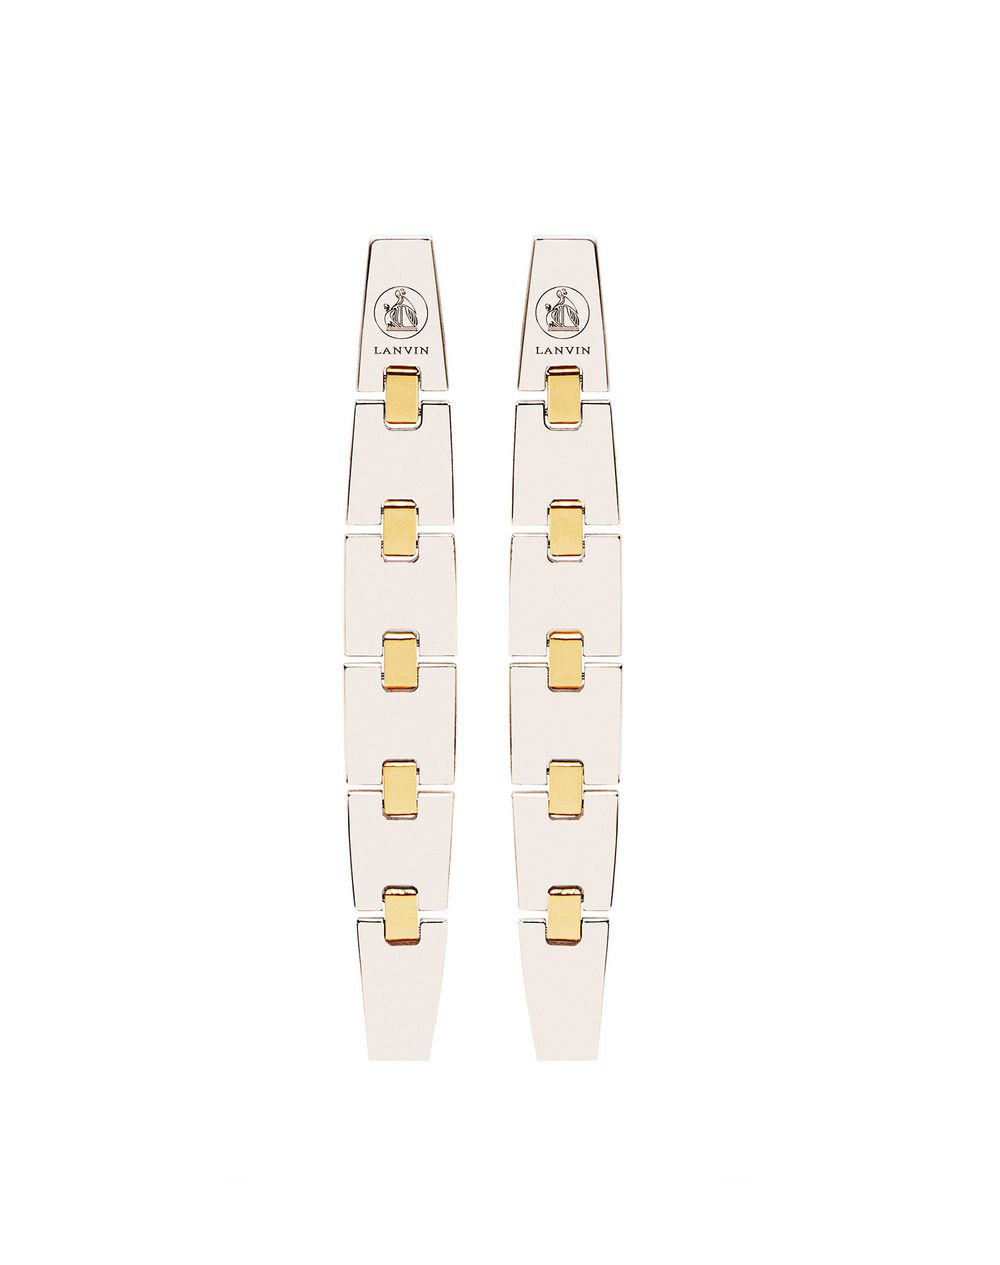 GOURMETTE EARRINGS - Lanvin